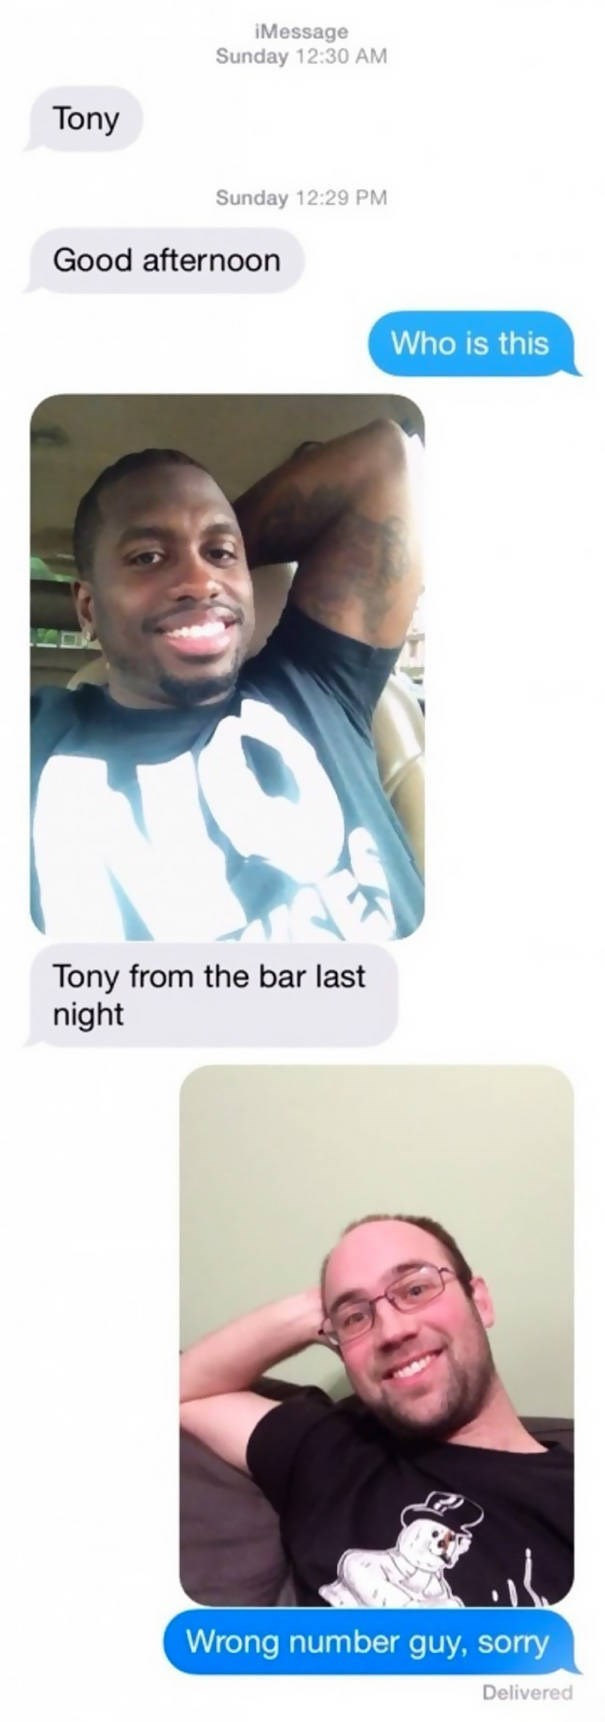 Face - iMessage Sunday 12:30 AM Tony Sunday 12:29 PM Good afternoon Who is this Tony from the bar last night Wrong number guy, sorry Delivered